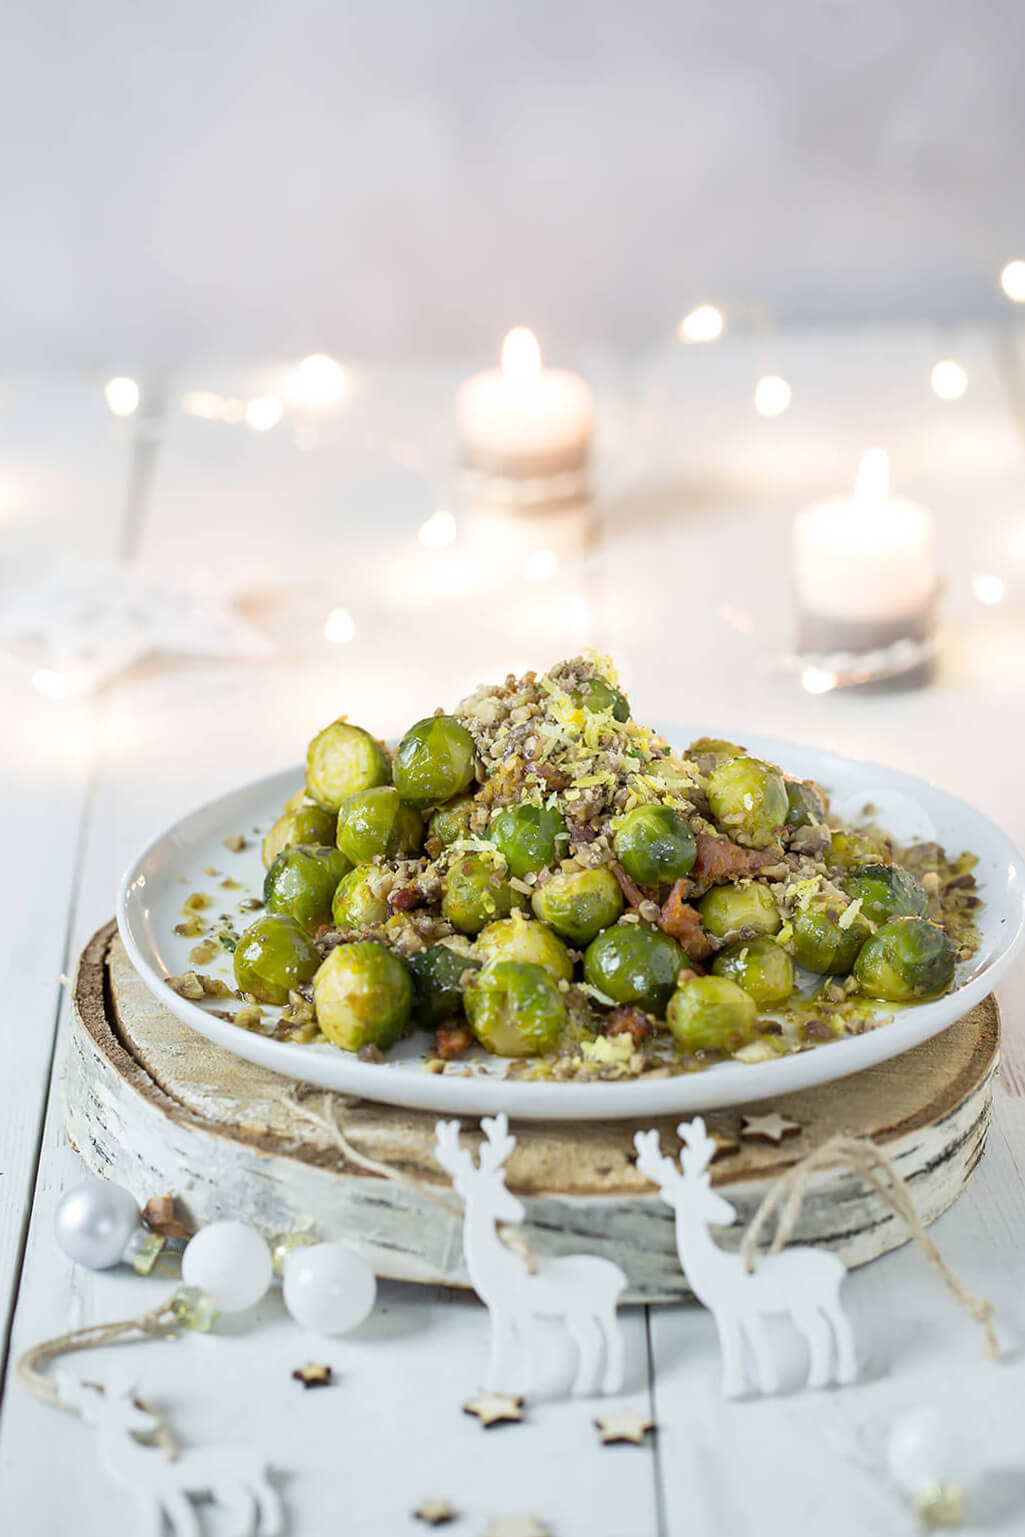 sprout recipe, roasted sprouts, Paleo Crust, roasted sprouts with chorizo, sprouts with chestnuts recipe, roasted sprouts recipe, Christmas side recipes, Modern Food Stories, food photography, sprouts food photography